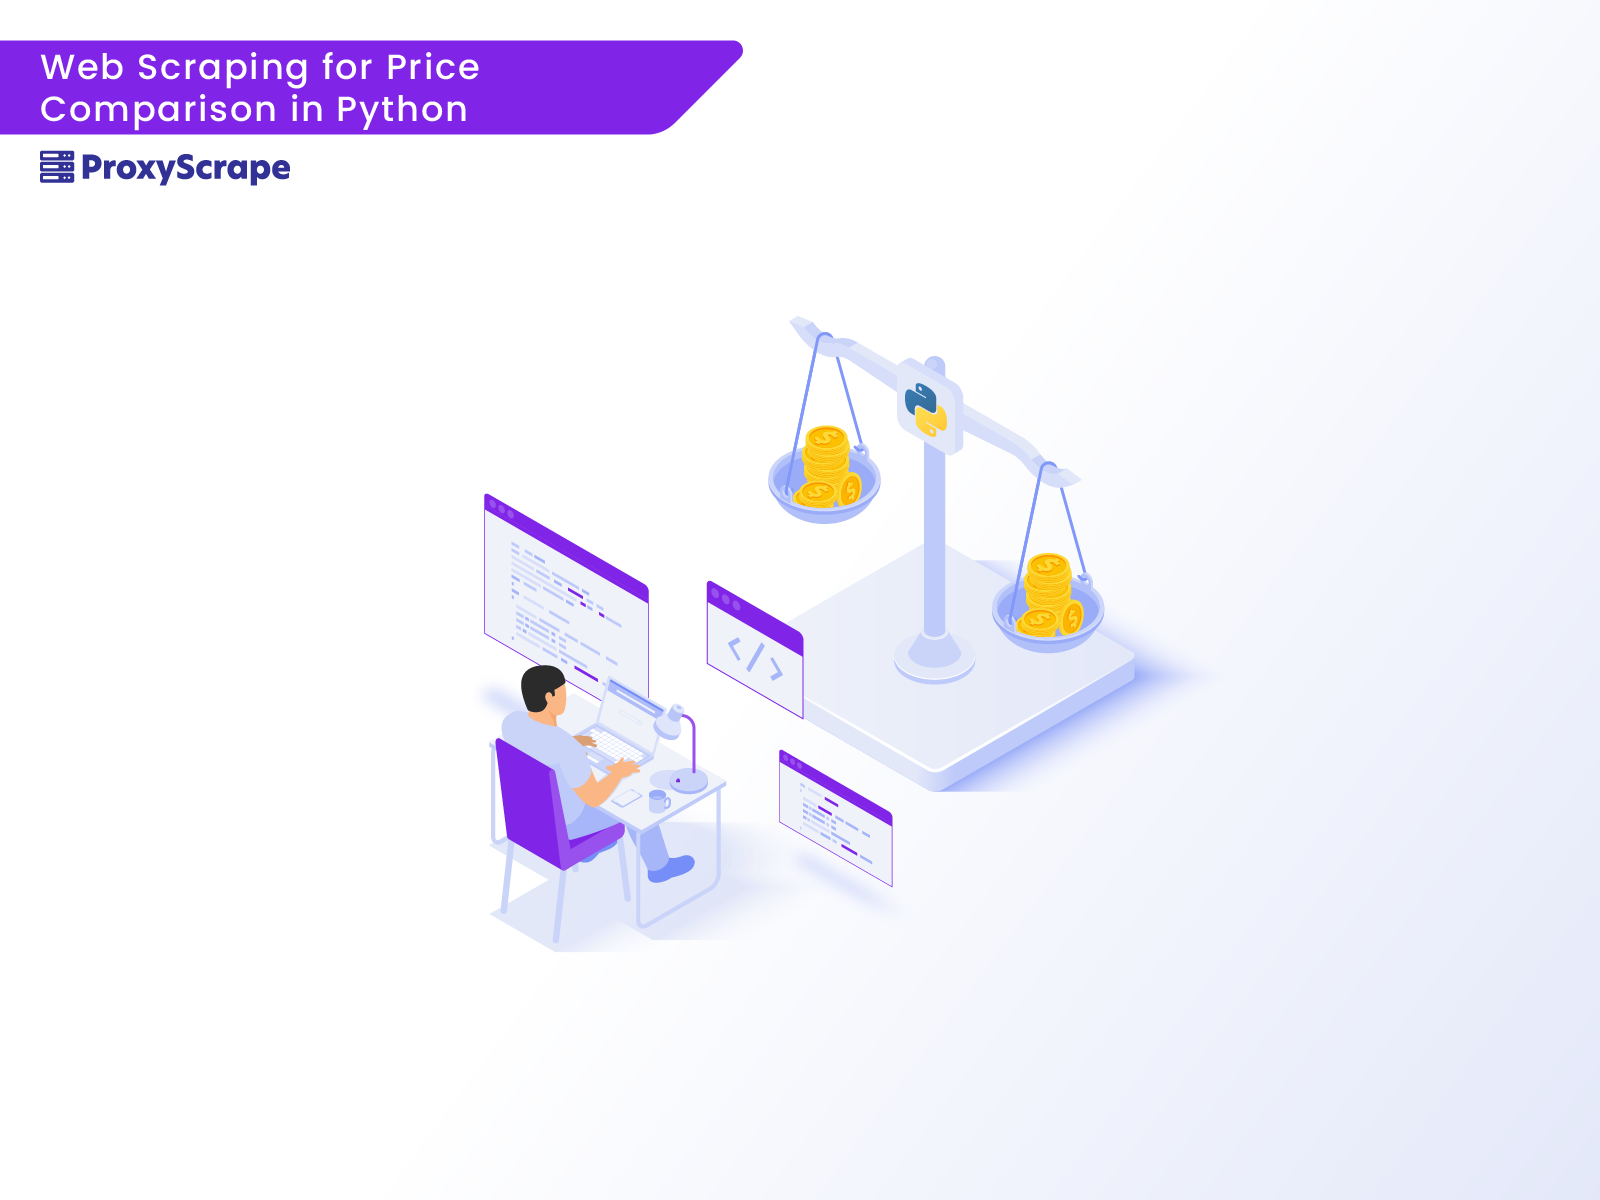 Web Scraping for Price Comparison in Python